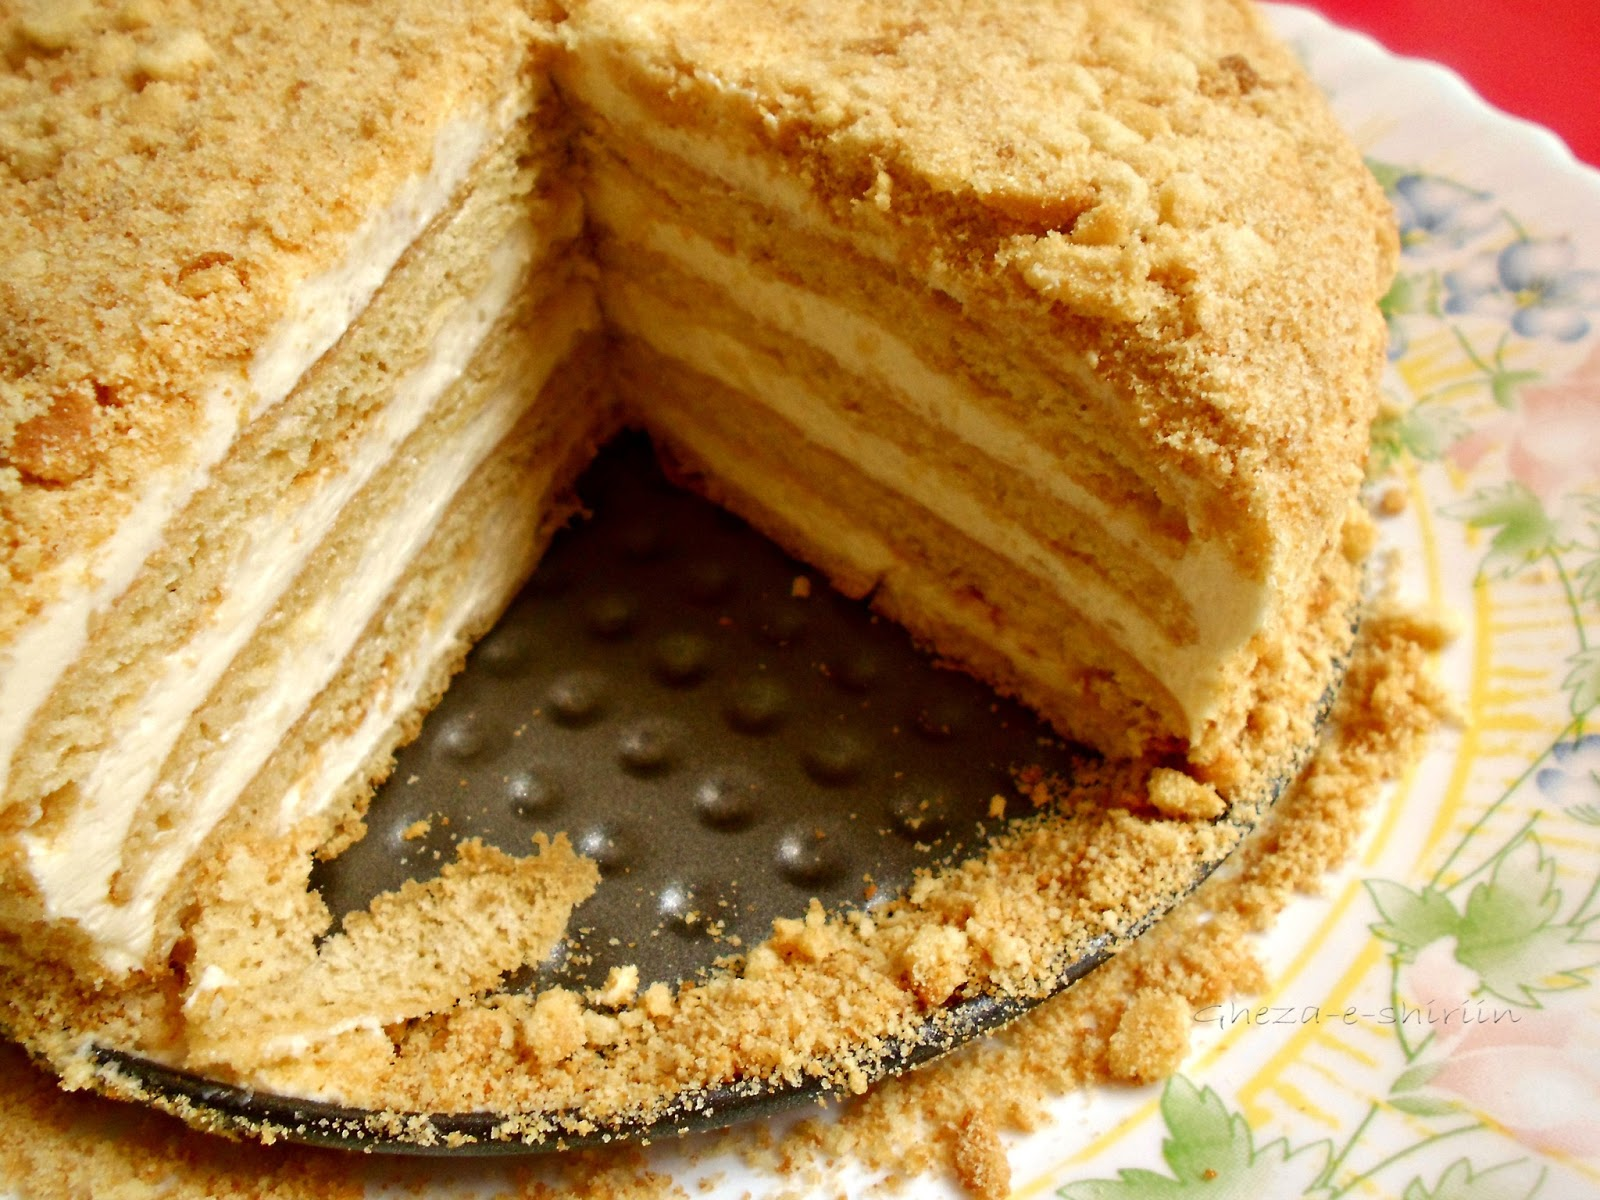 Medovnik In Check Slovakian Translated As Honeycake Or Honeybread Is More Than A Cookie Cake This Has Its Origin Russia